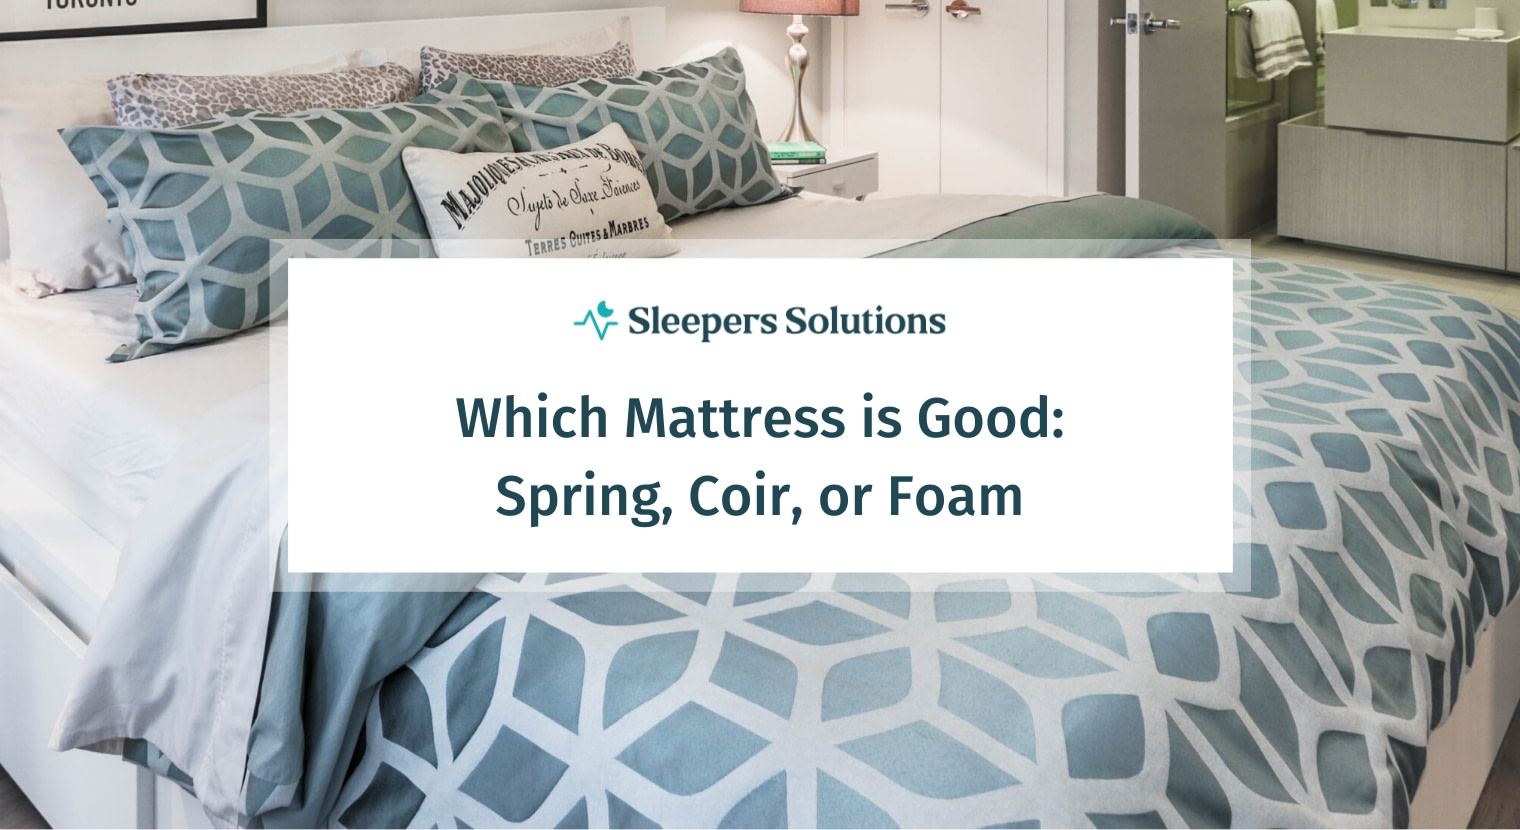 Which Mattress is Good: Spring, Coir, or Foam